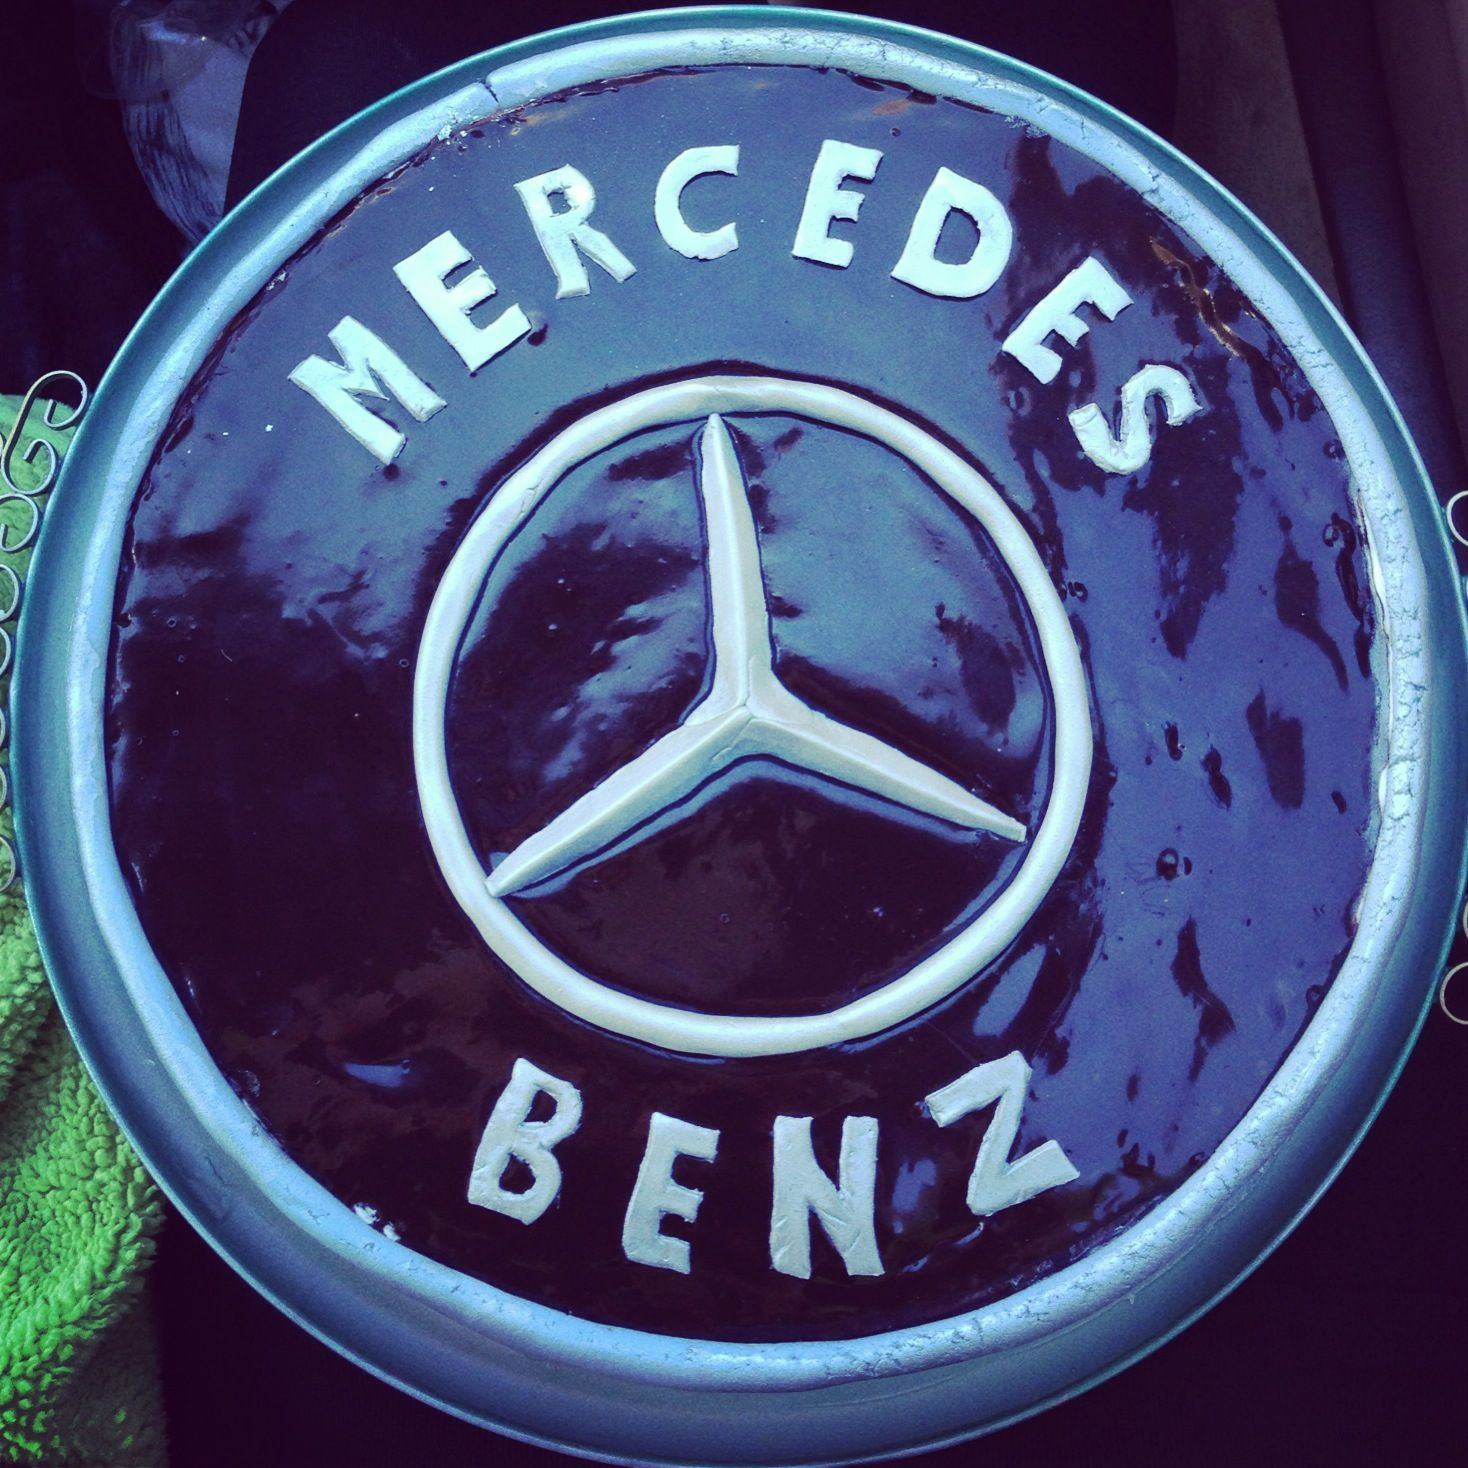 This is going to be my cake for my 13th birthday for Mercedes benz cake design